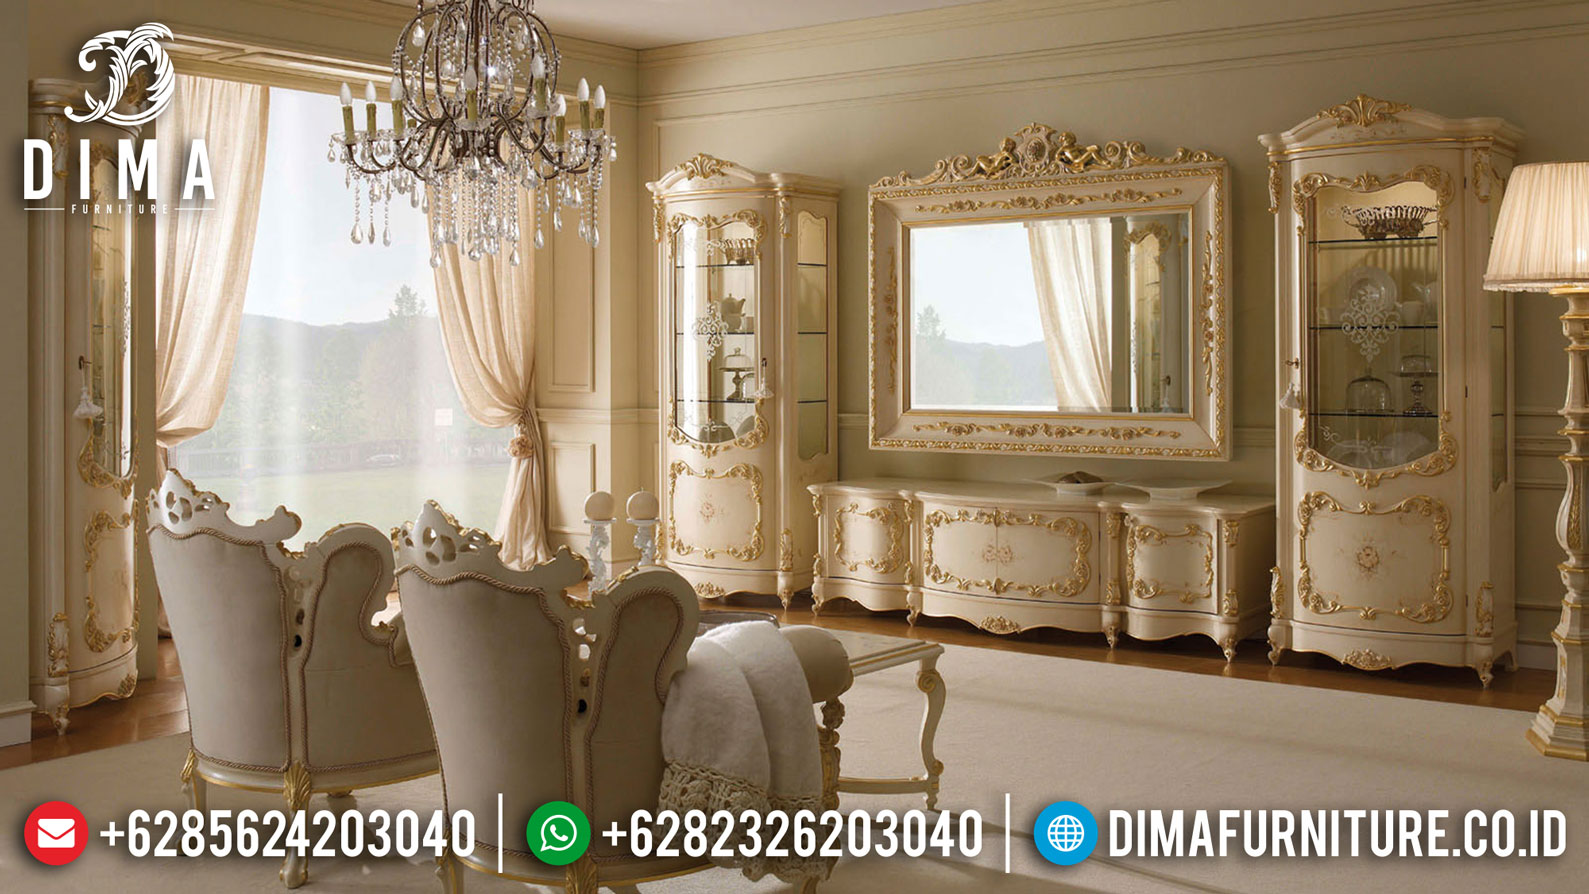 For Sale Lemari Hias Mewah Luxury Living Room Design Mebel Jepara Terbaru TTJ-1029